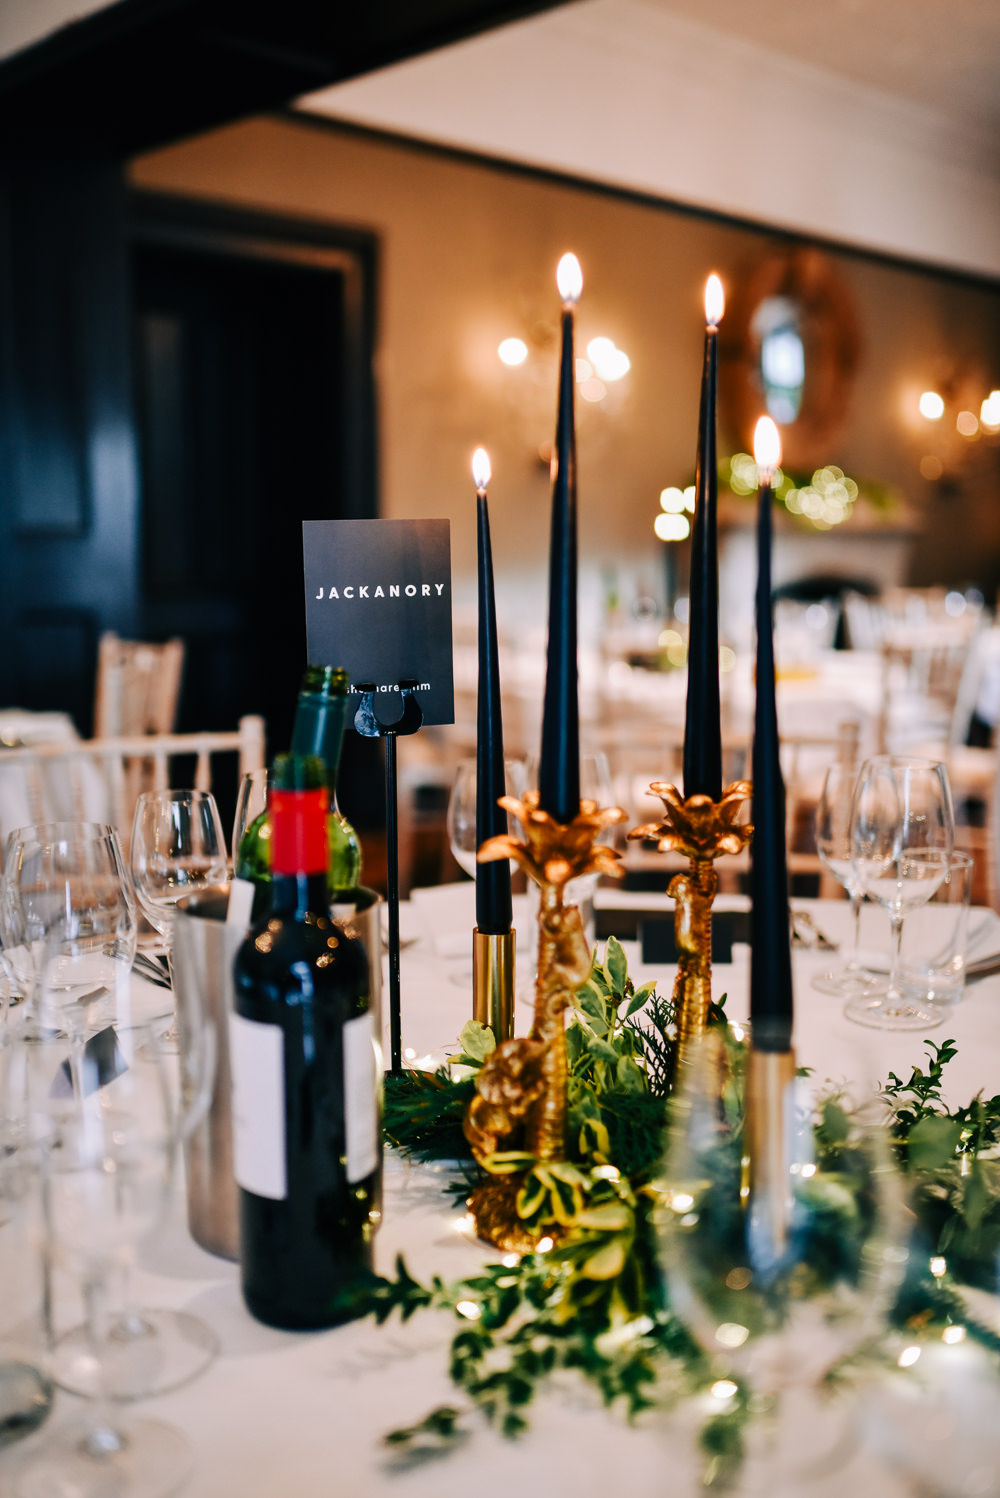 Centepiece Quirky Candle Sticks Greenery Foliage Glazebrook House Wedding Harriet Bird Photography